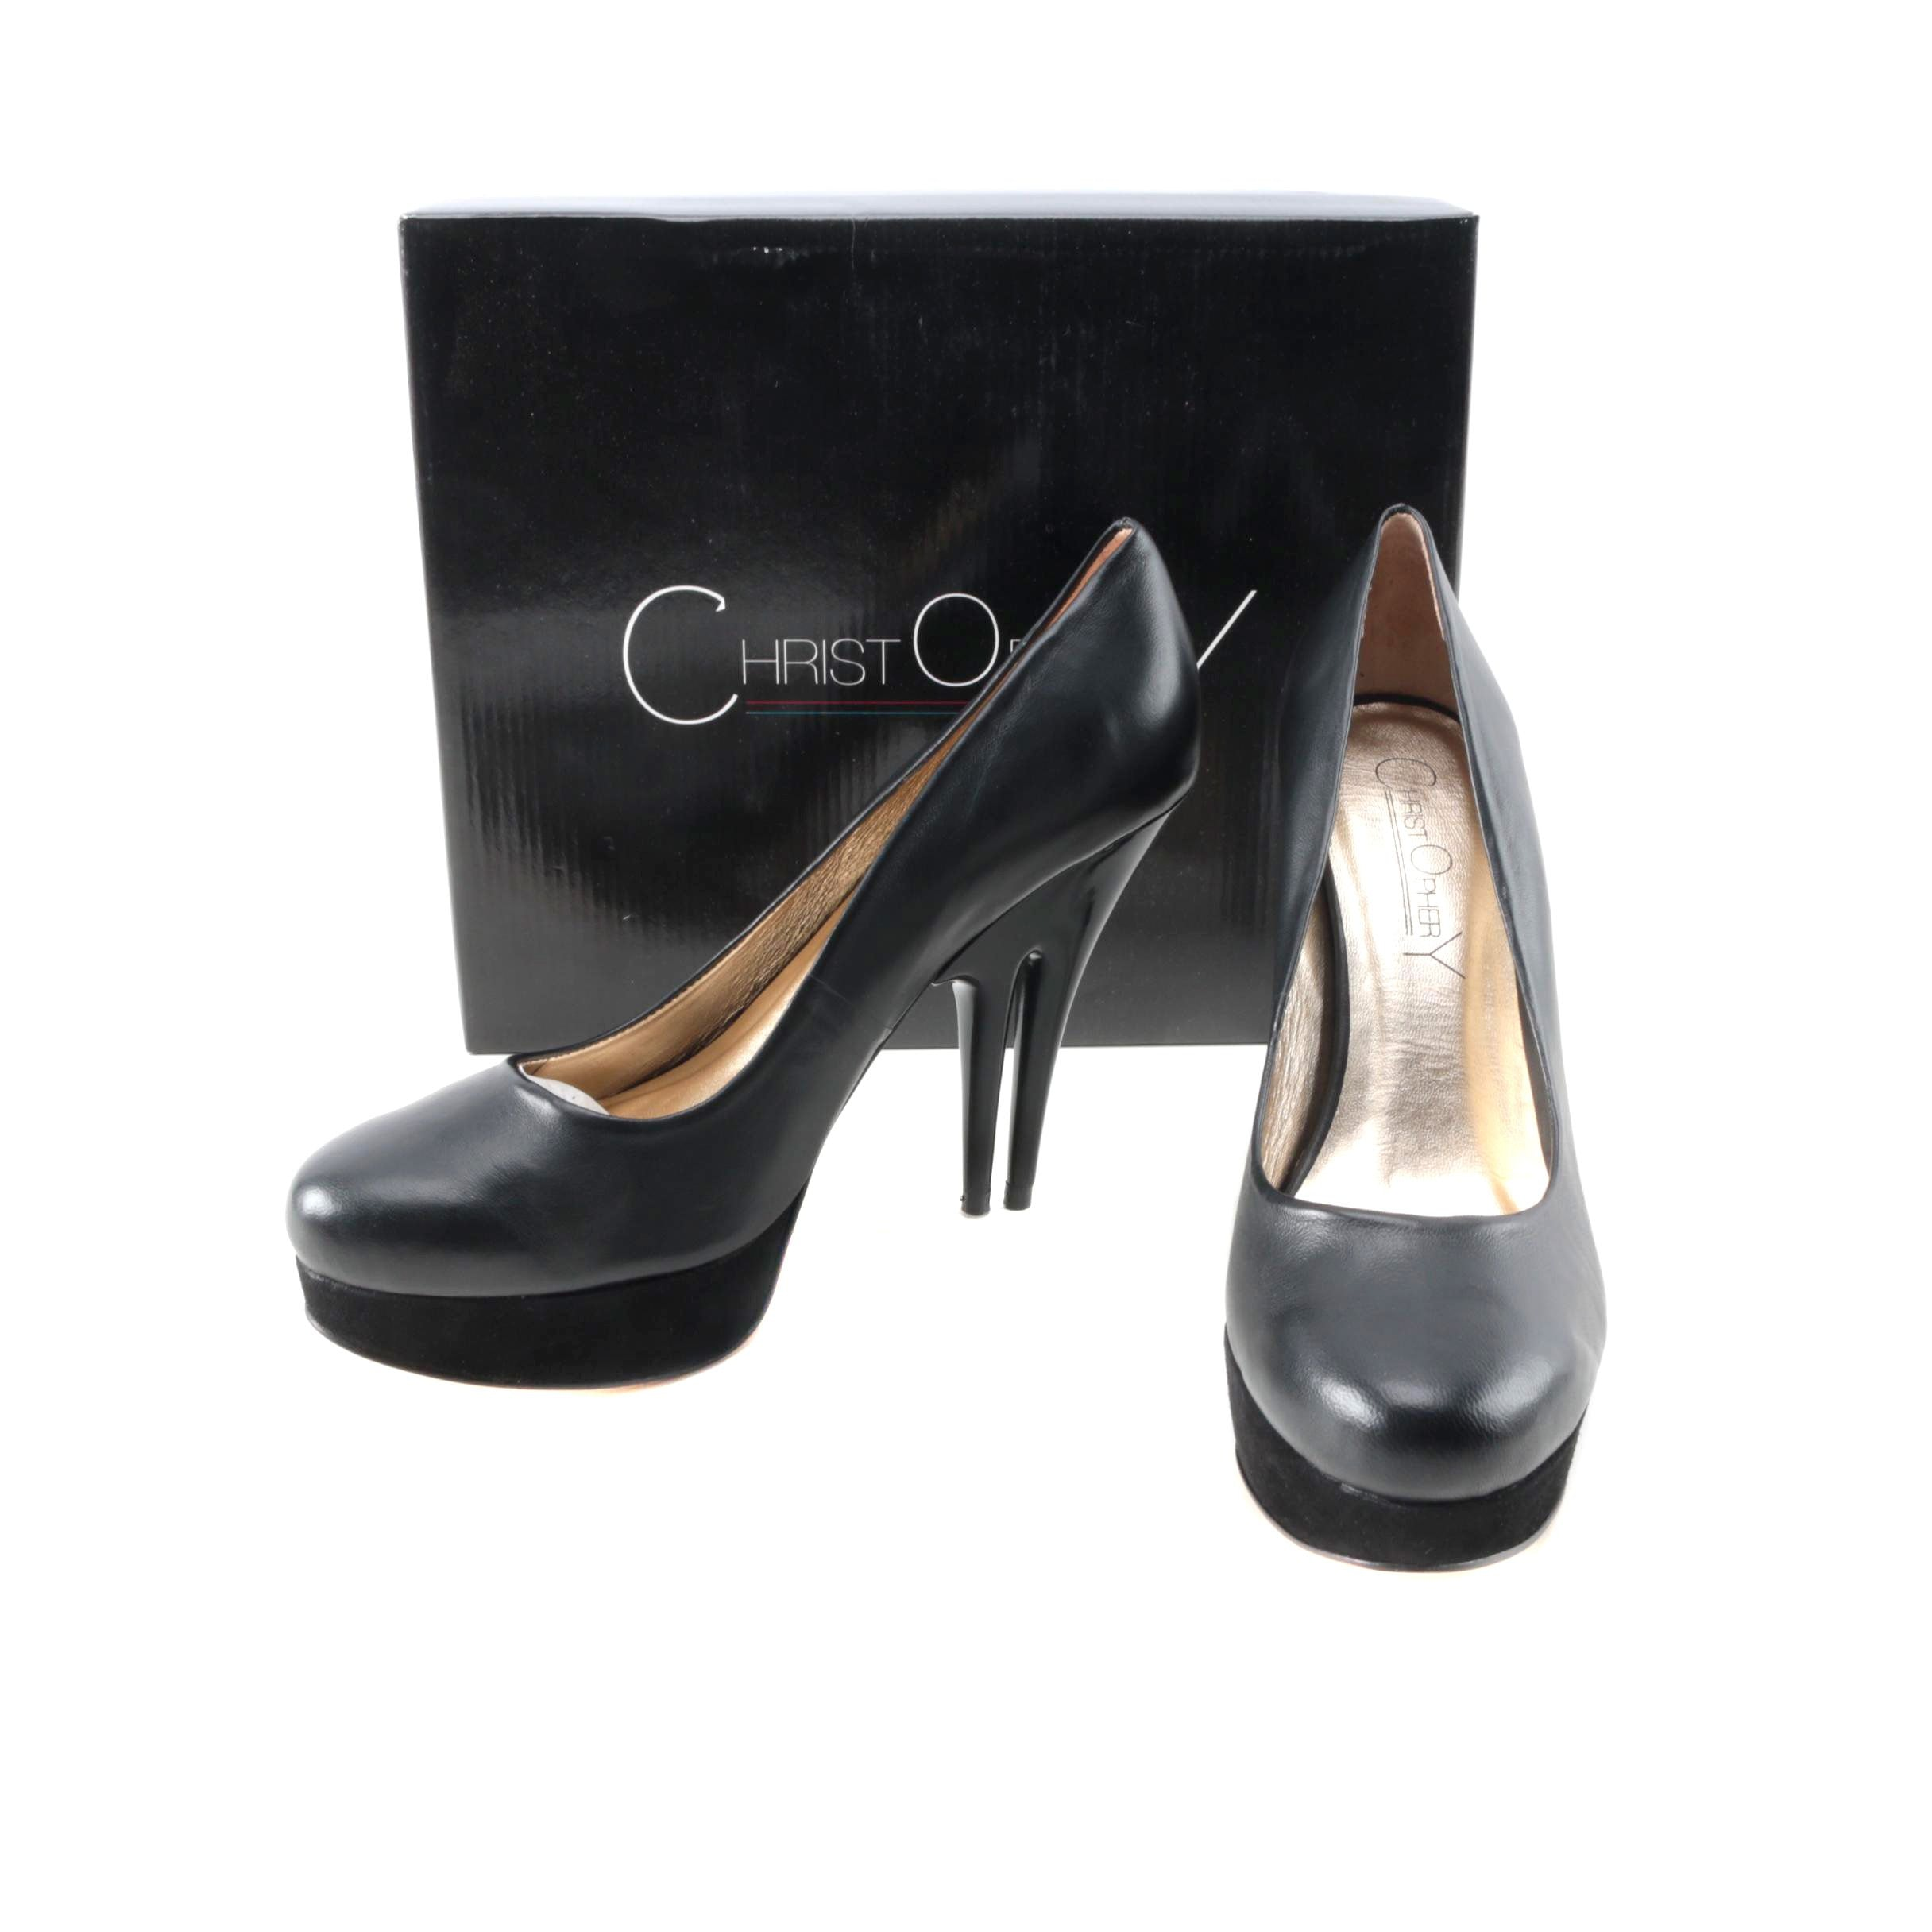 Christopher Coy Collection Prototype Heels in Black Leather